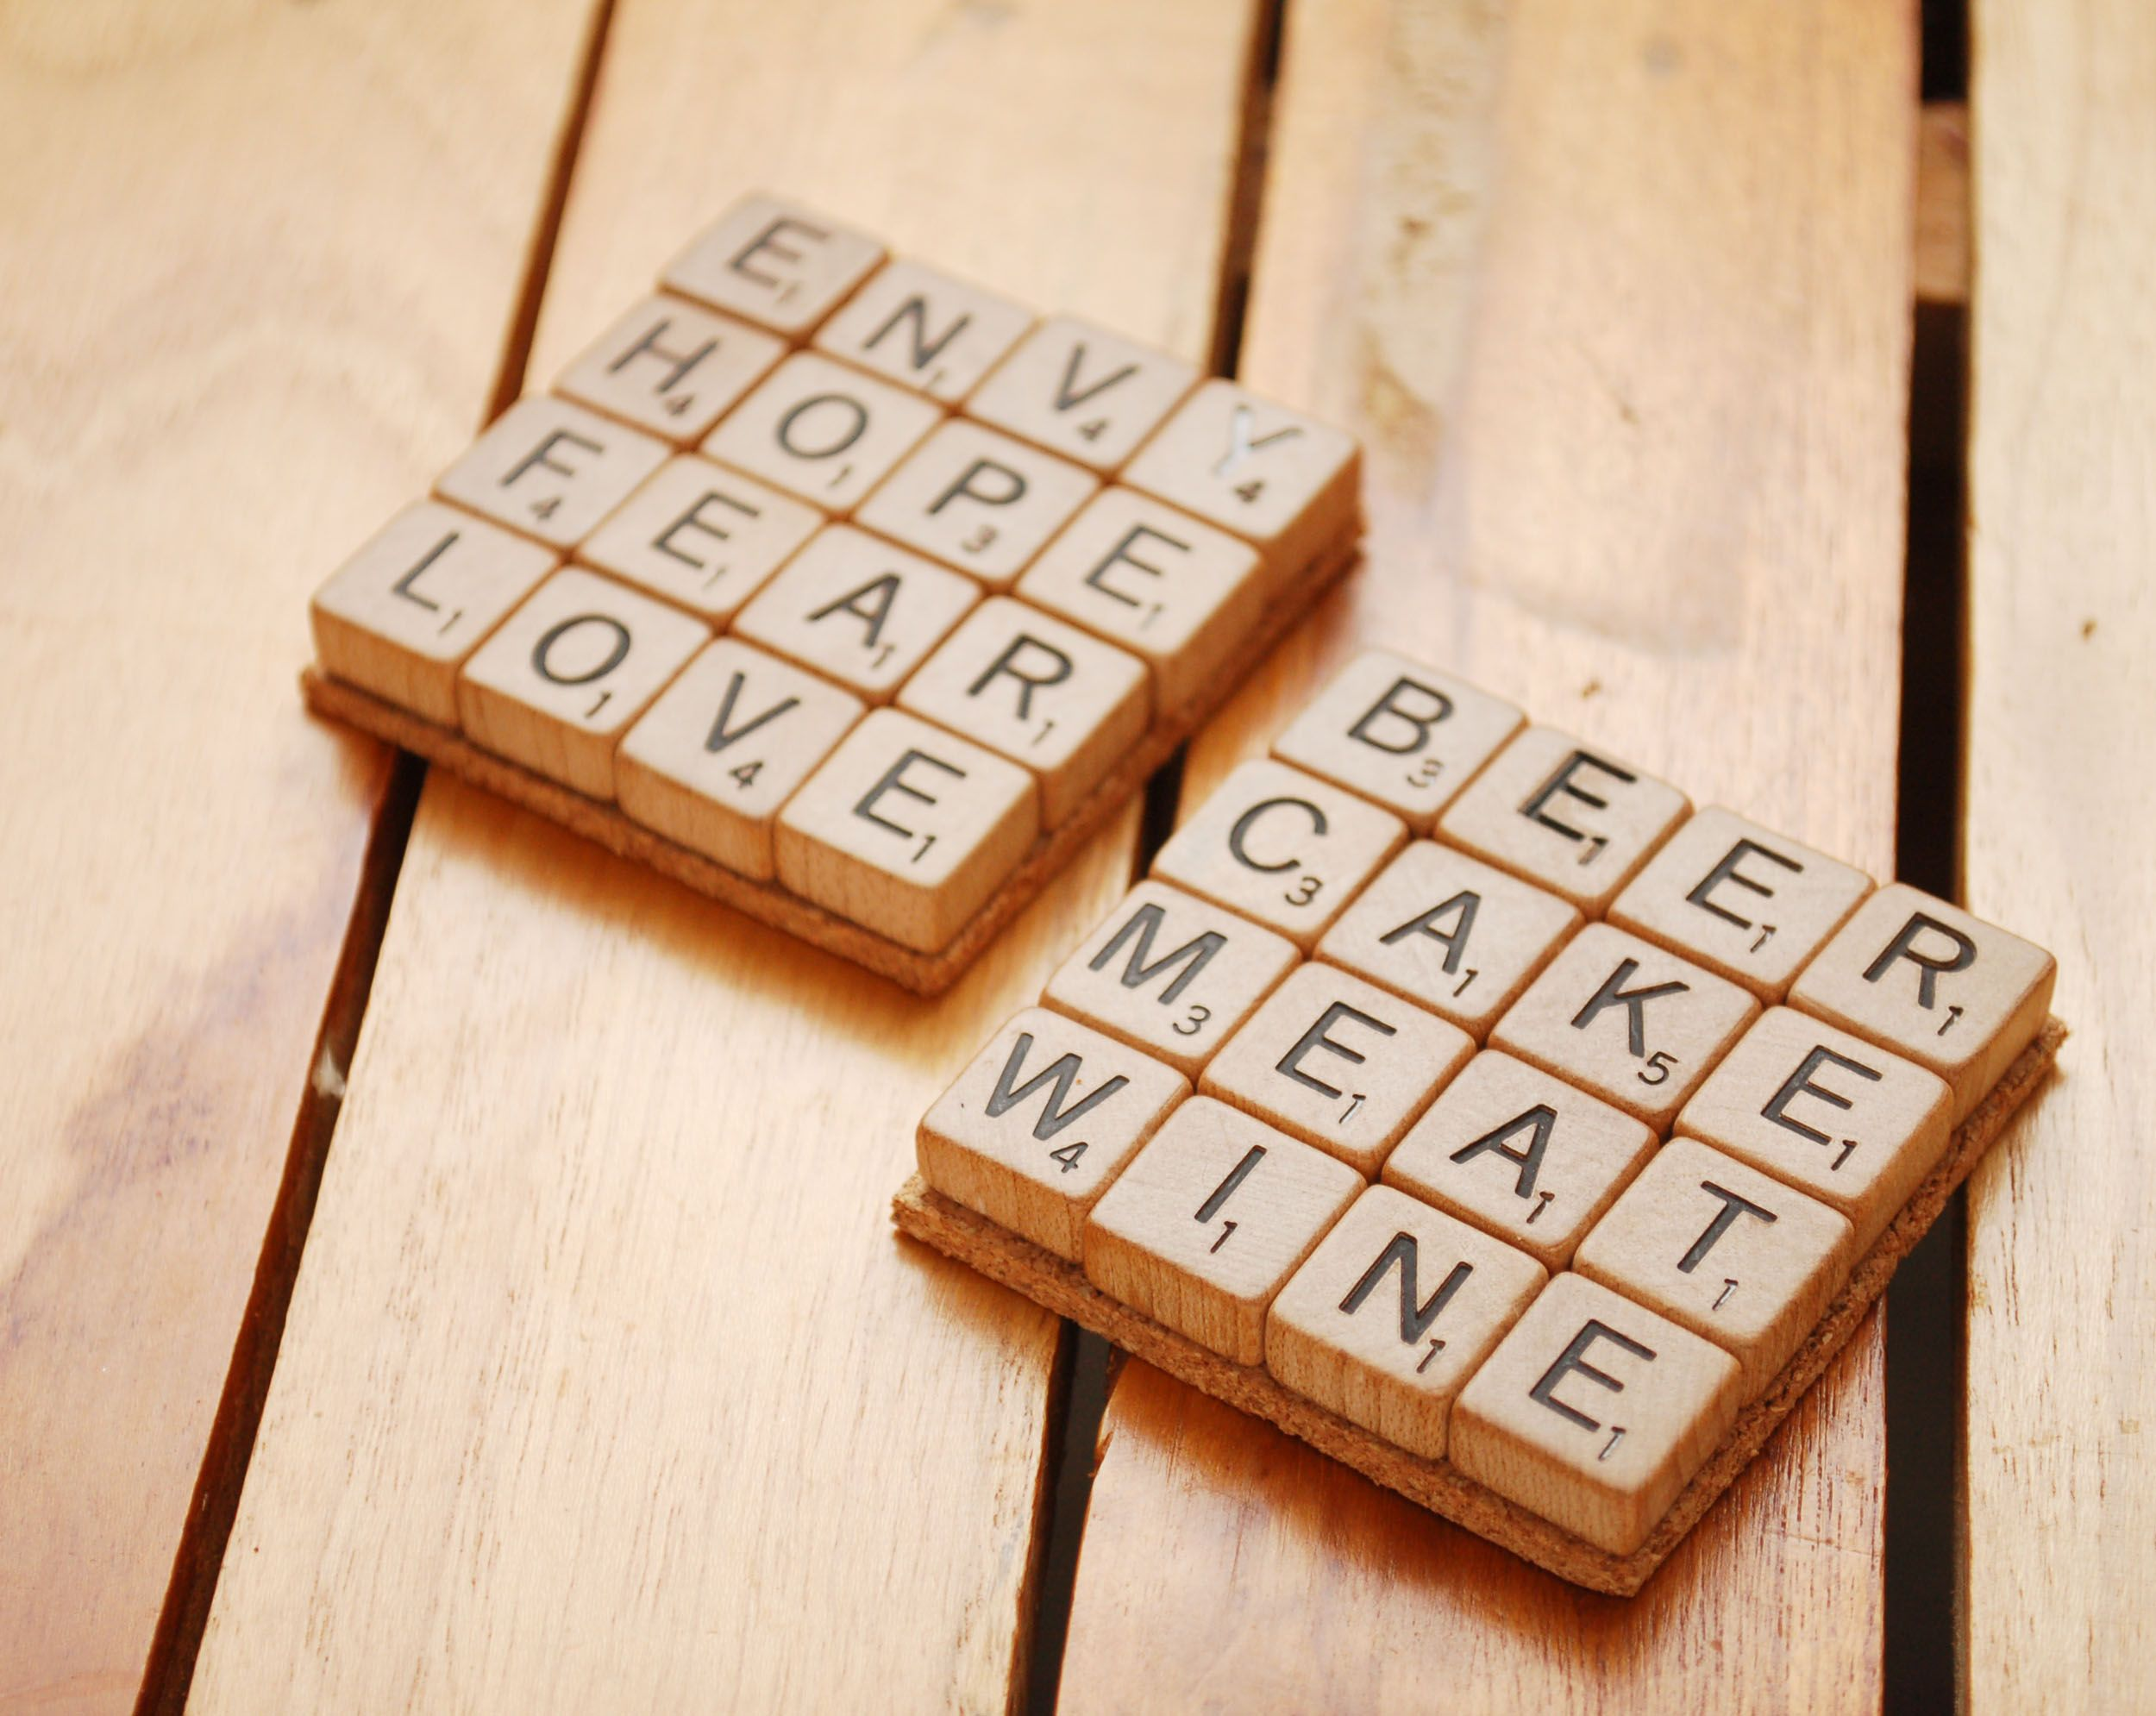 Make Scrabble Tile Coasters | wikiHow to Play Games ...